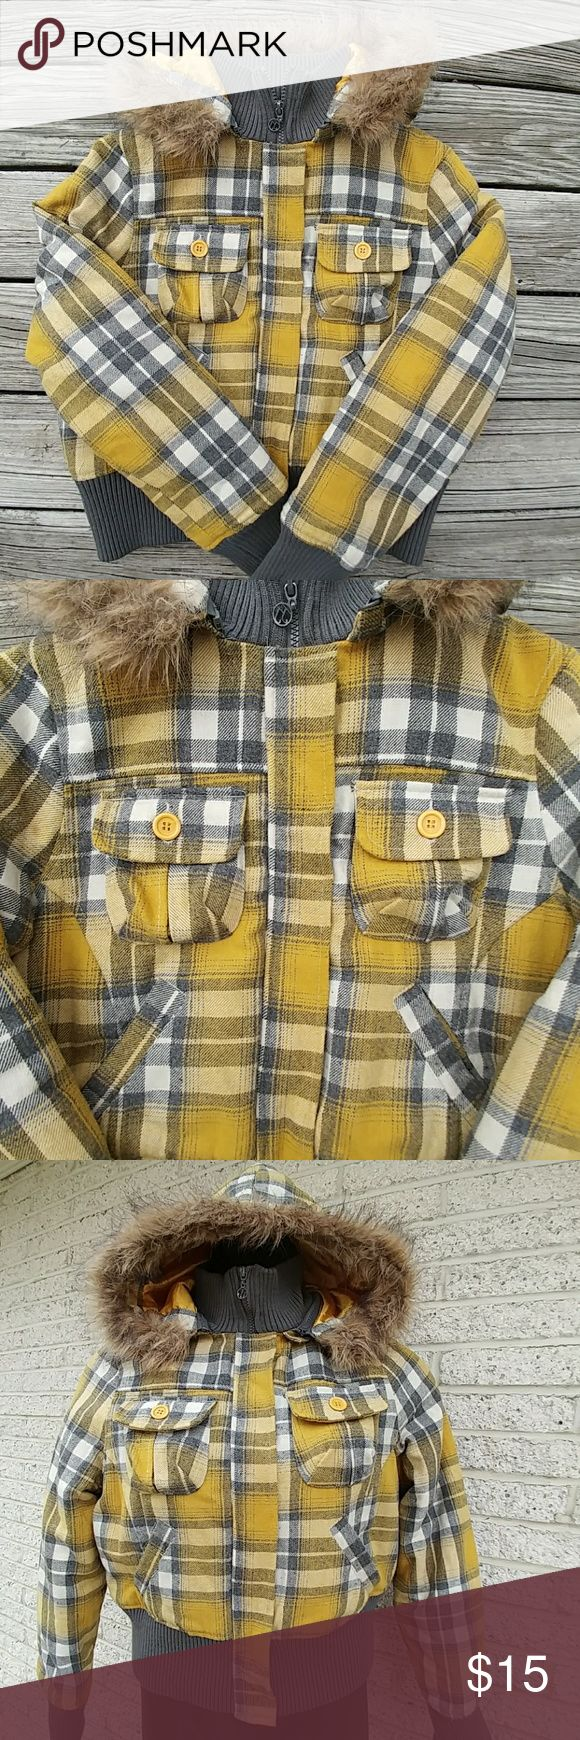 Yellow & Gray Plaid Hooded Bomber Jacket Jacket is in good preowned condition. It's accented with a detachable hood, two chest button pockets and two front hand pockets. Measurements are 44 inches bust and 20 inches in length. If you have any questions, please don't hesitate to contact me. Thanks! Jou Jou Jackets & Coats